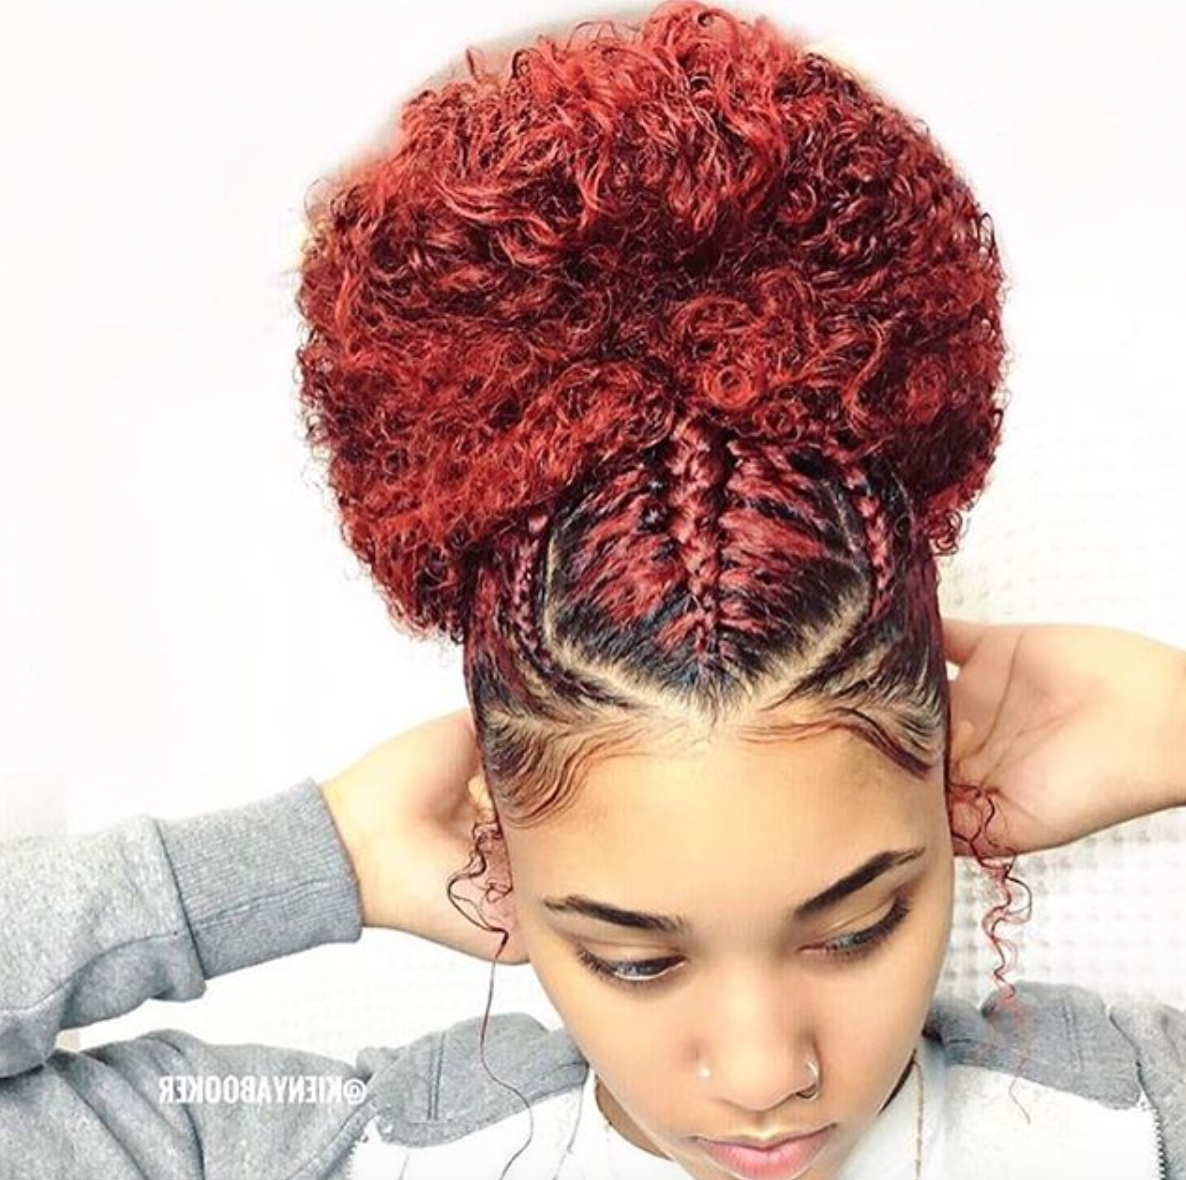 Well Known Reverse French Braids Ponytail Hairstyles With Chocolate Coils Throughout Pinblack Hair Information – Coils Media Ltd On Natural (View 10 of 20)